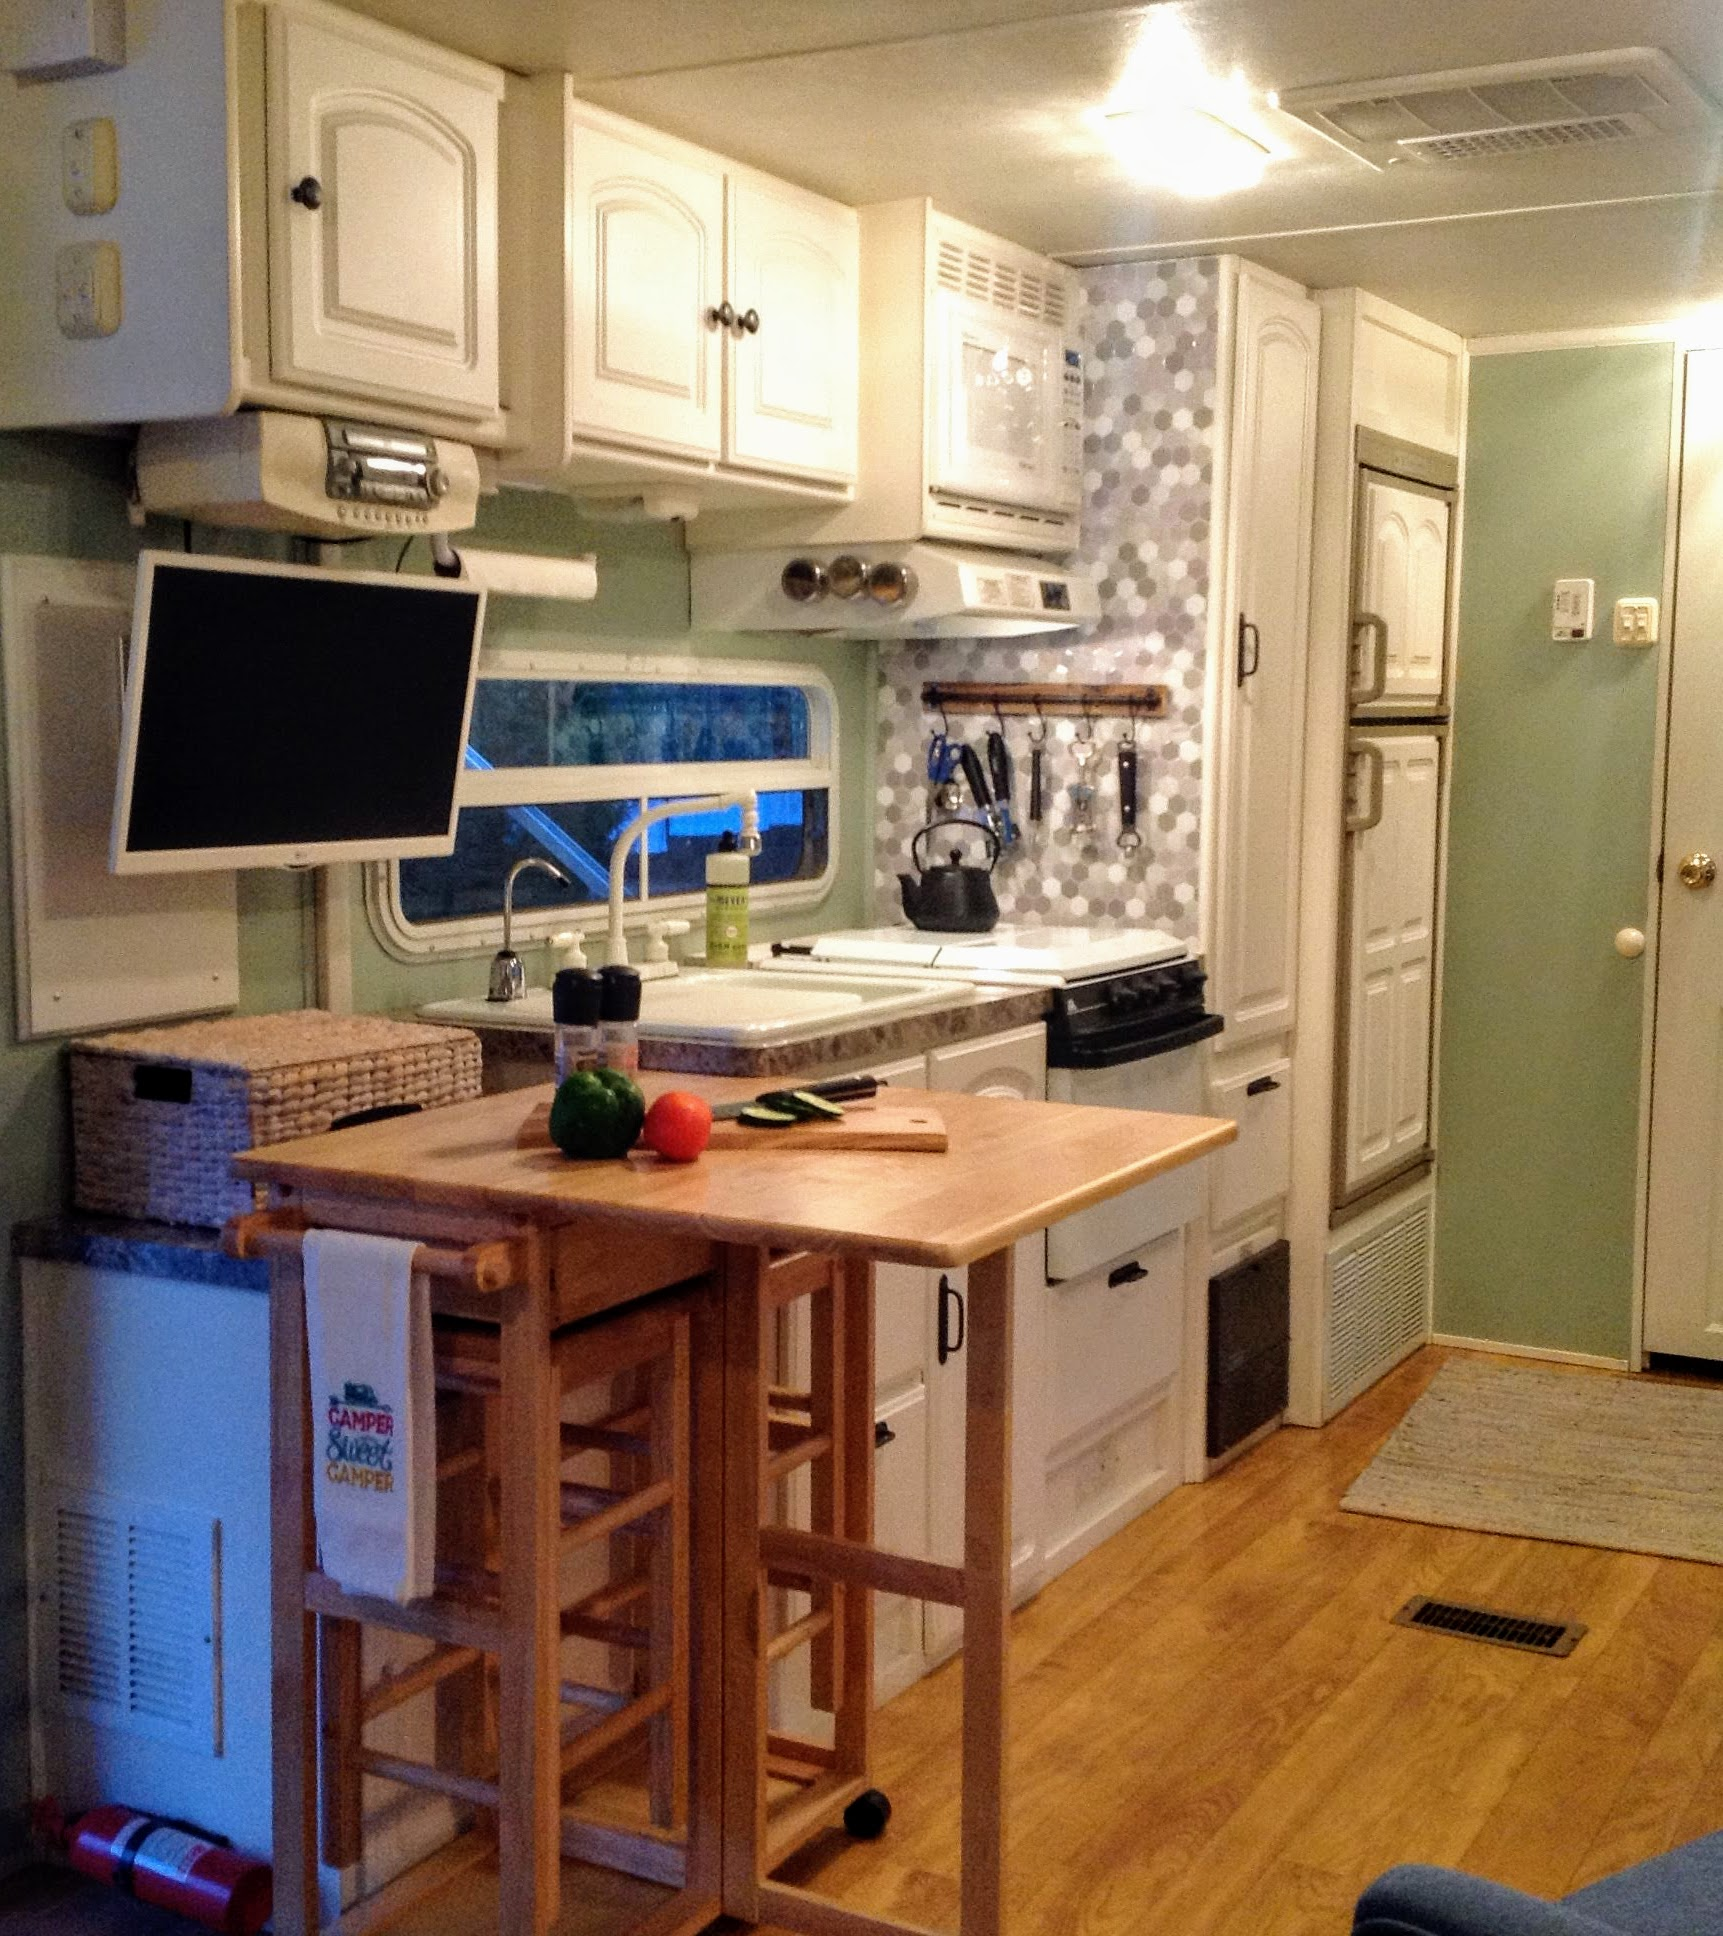 Kitchen area with fold down table that can be used for extra counter space.  Smart TV. Starcraft Aruba 2003